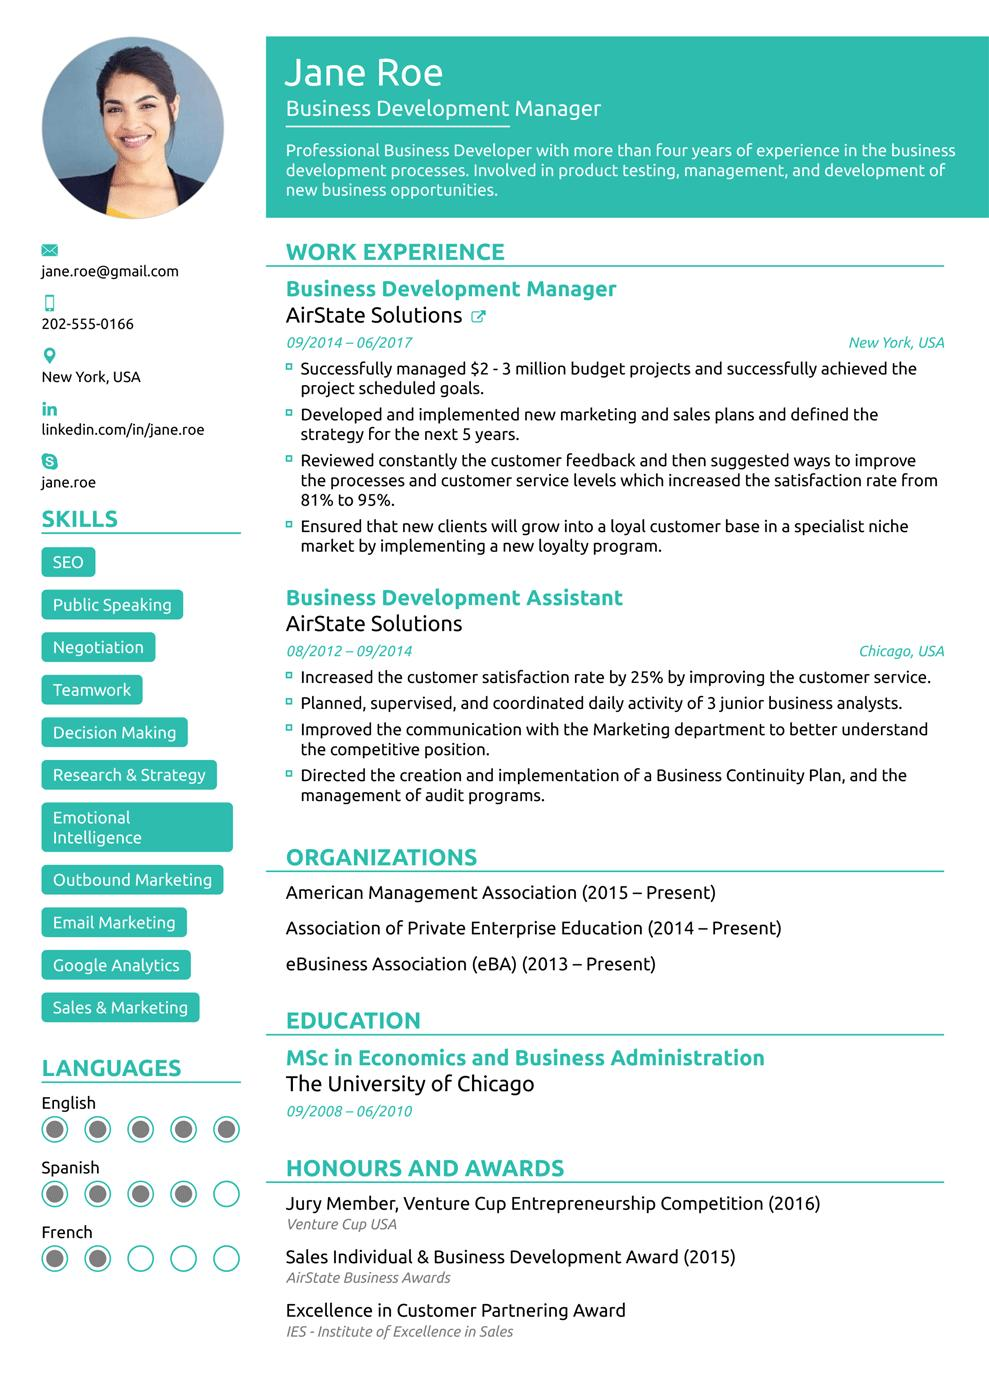 52 Inspirational Latest Resume Layout for Design